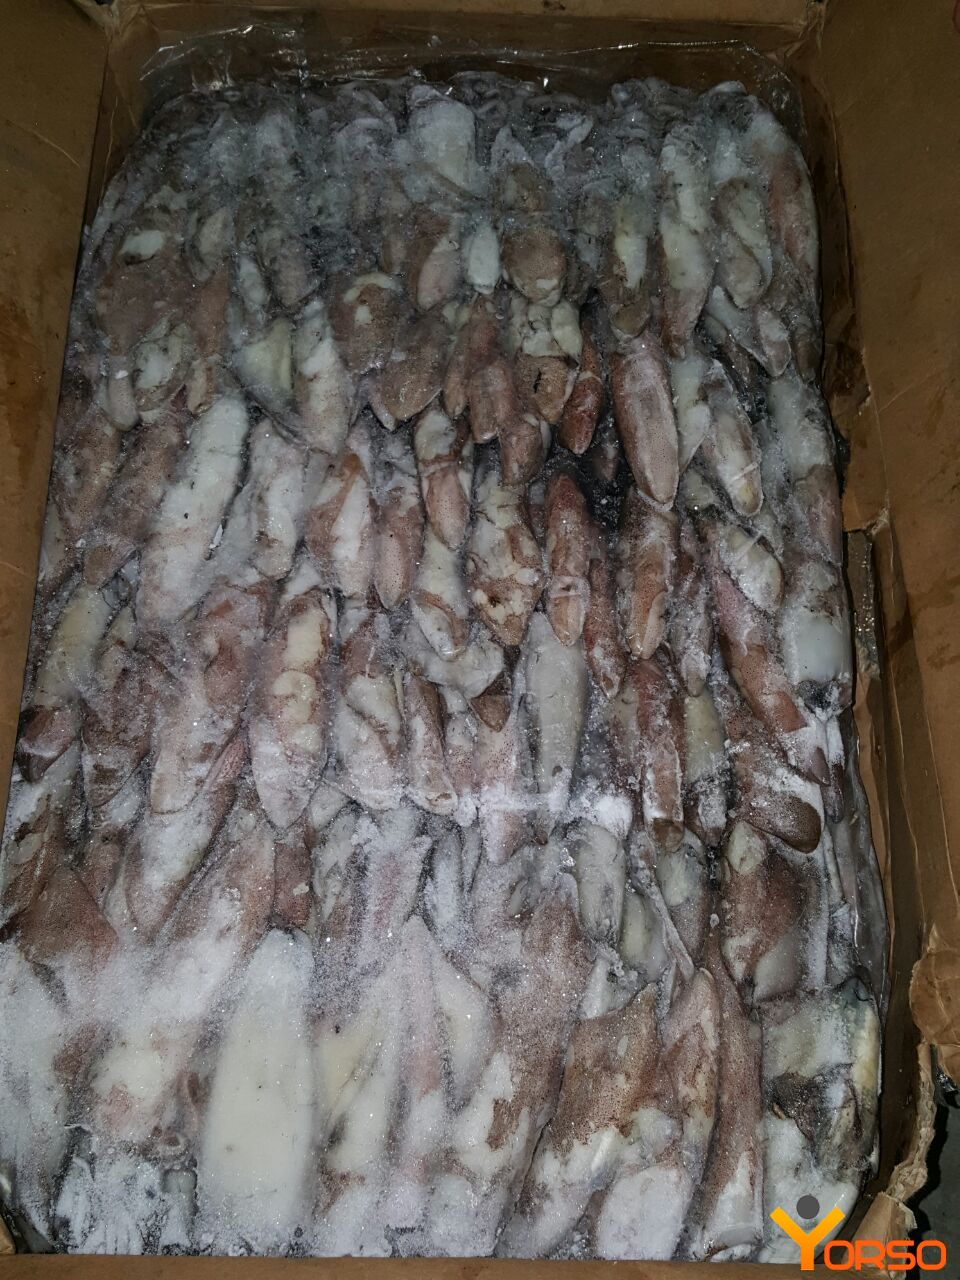 Squid carcass, 1/22